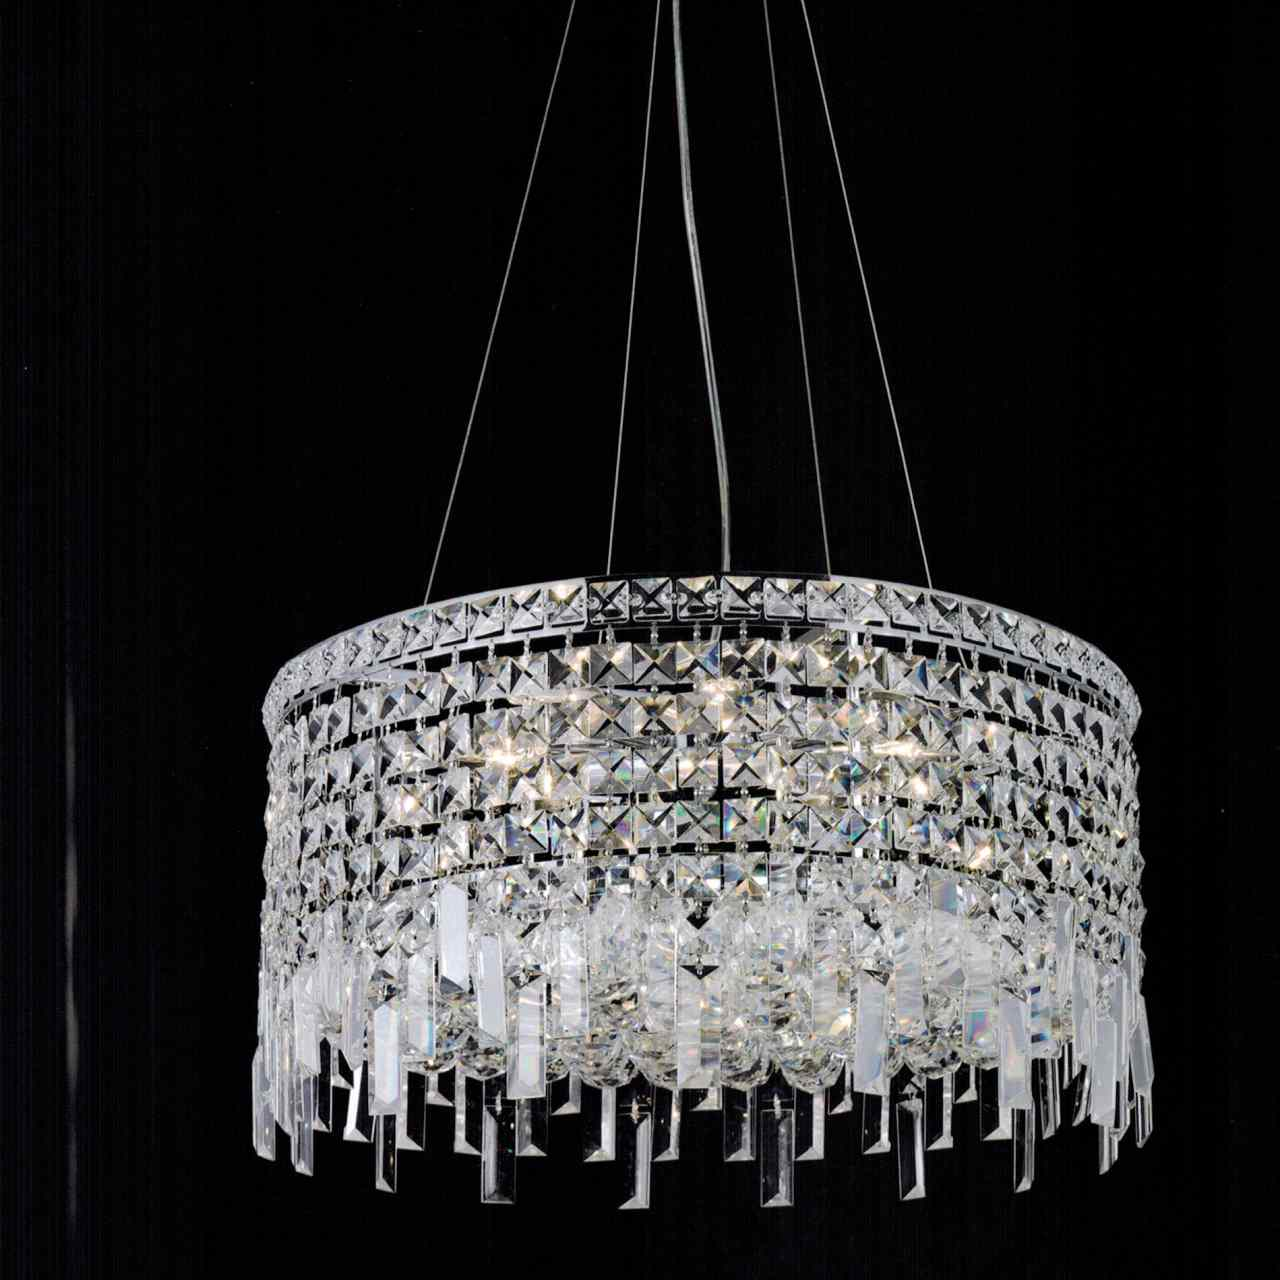 Picture of 16  Bossolo Transitional Crystal Round Pendant Chandelier Polished Chrome 5 Lights  sc 1 st  Brizzo Lighting Stores & Brizzo Lighting Stores. 16